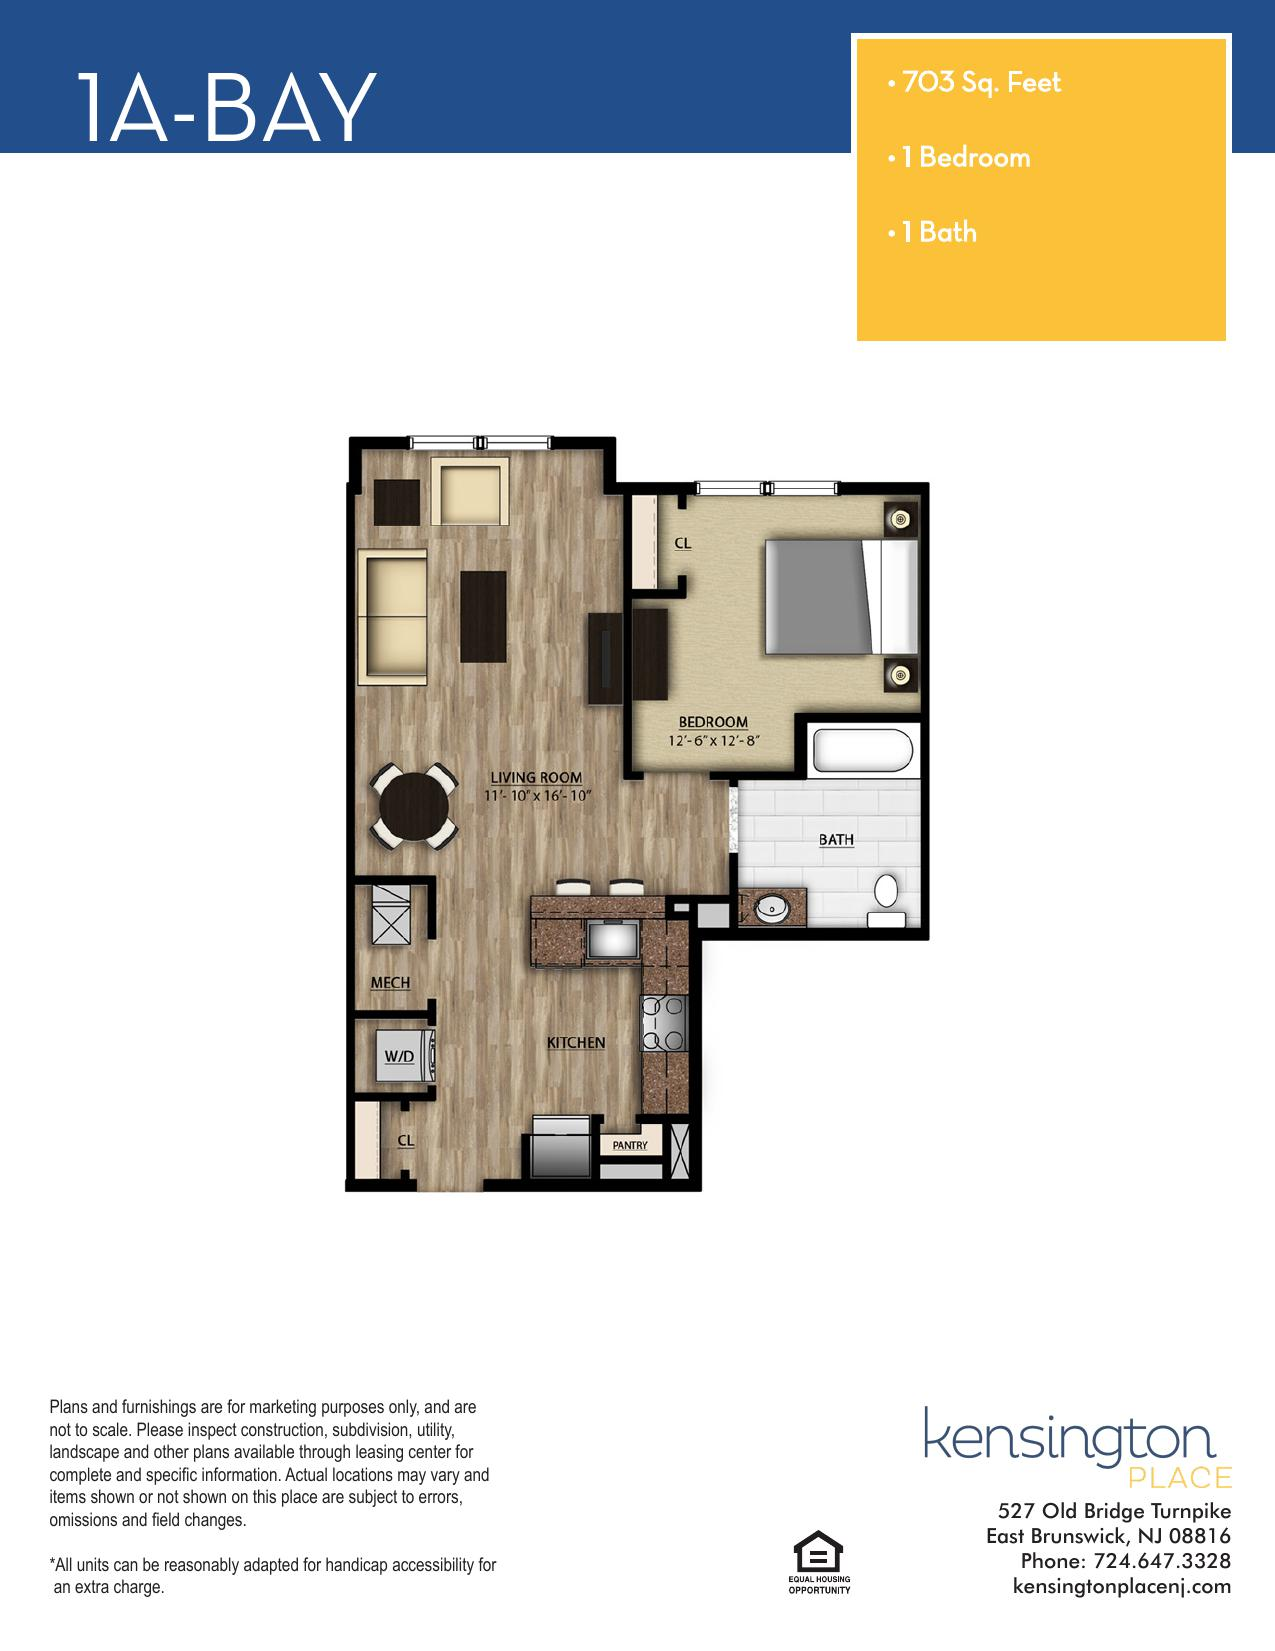 1A BAY Floor Plan